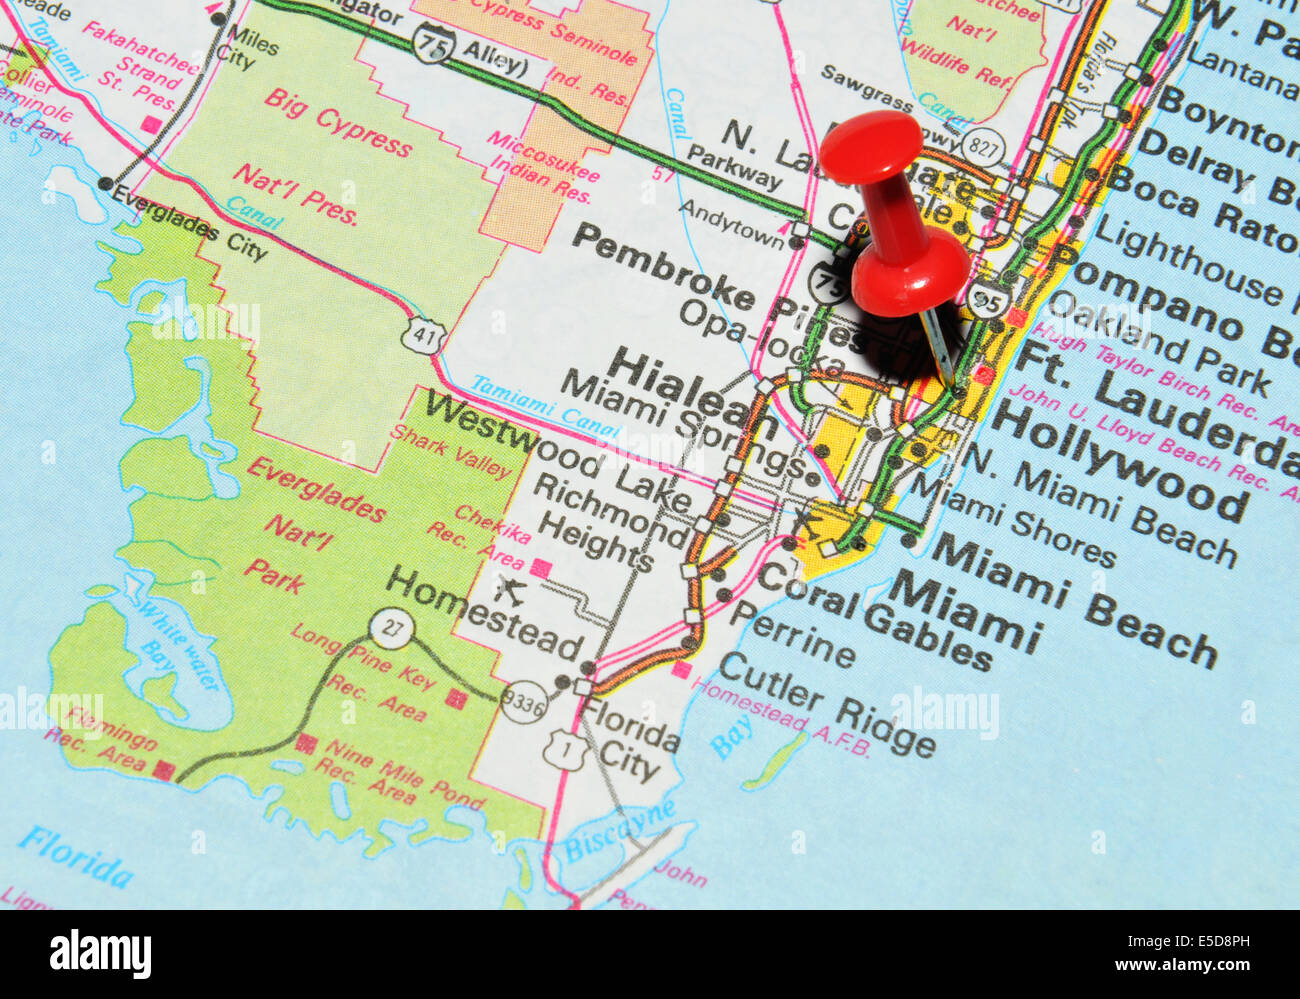 Miami On Us Map Stock Photos Miami On Us Map Stock Images Alamy - Us-map-miami